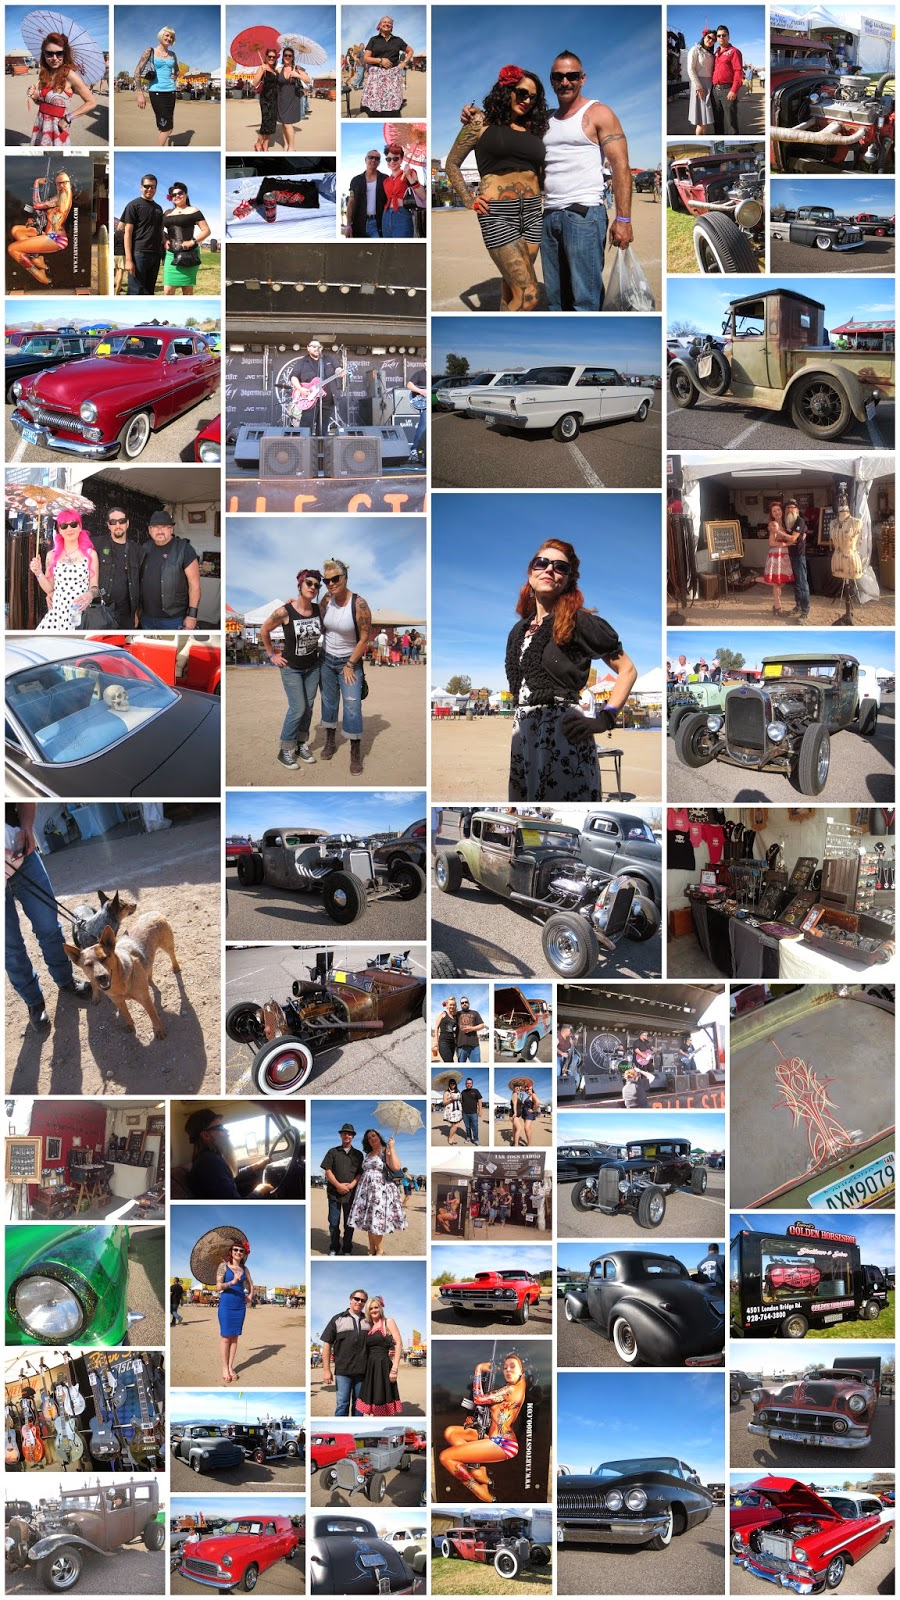 Rockabilly Reunion at Lake Havasu 2014